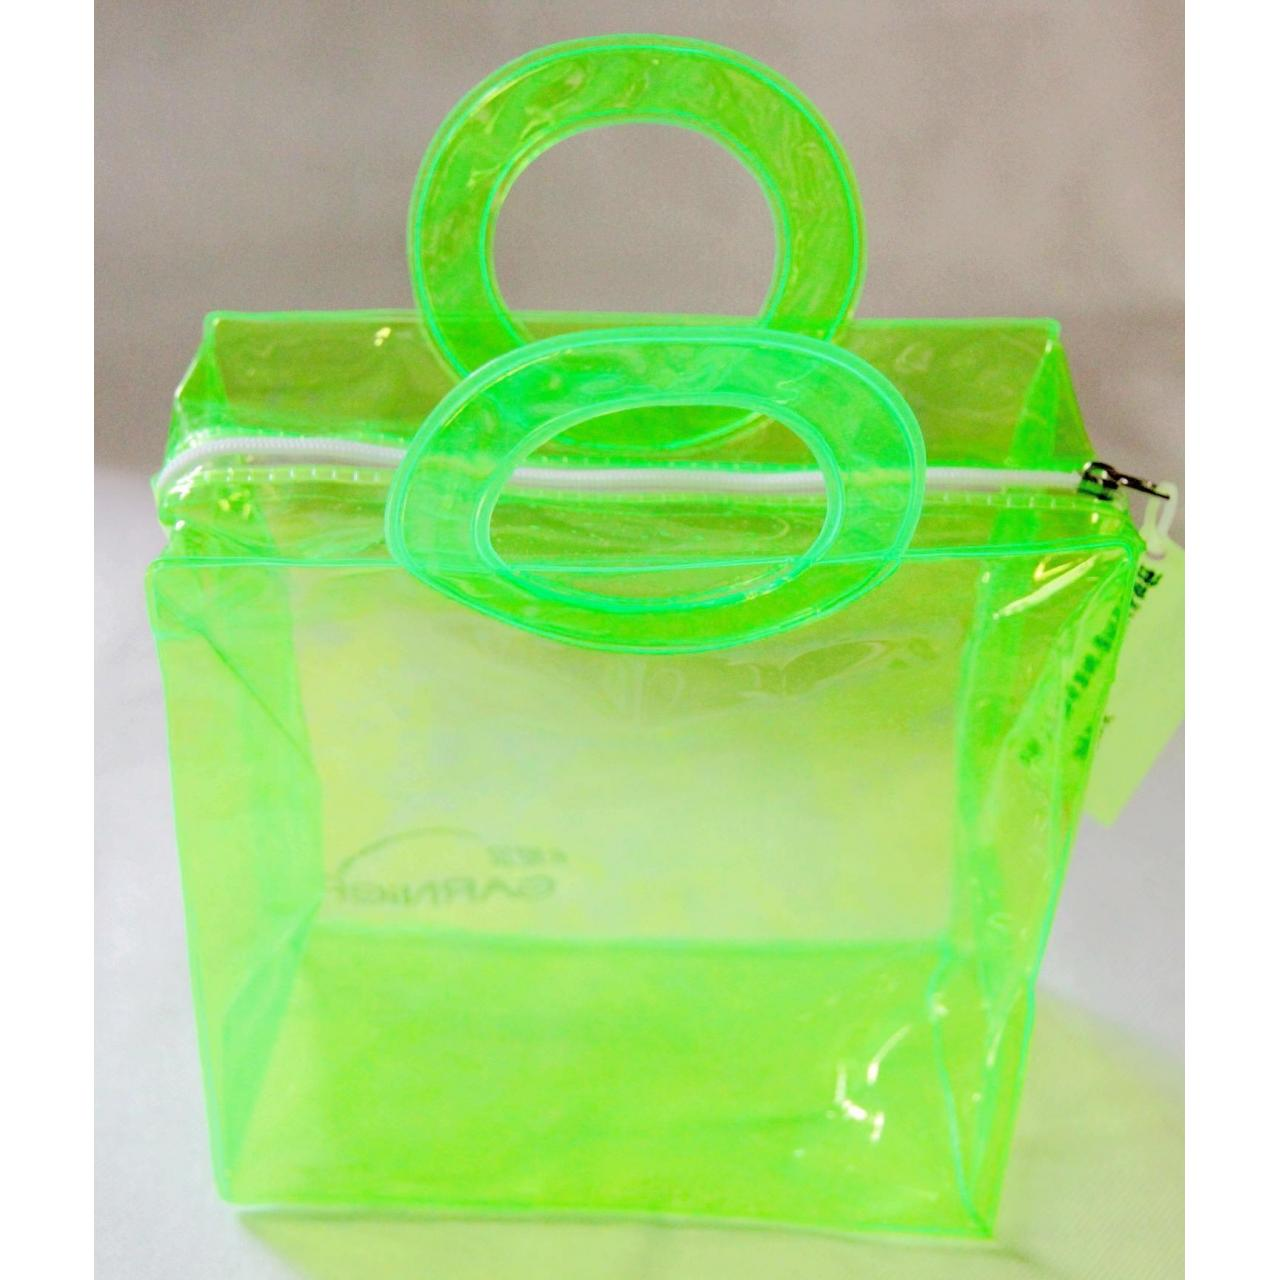 PVC Plastic Handle Bag,Transparent Green Bag With Zipper